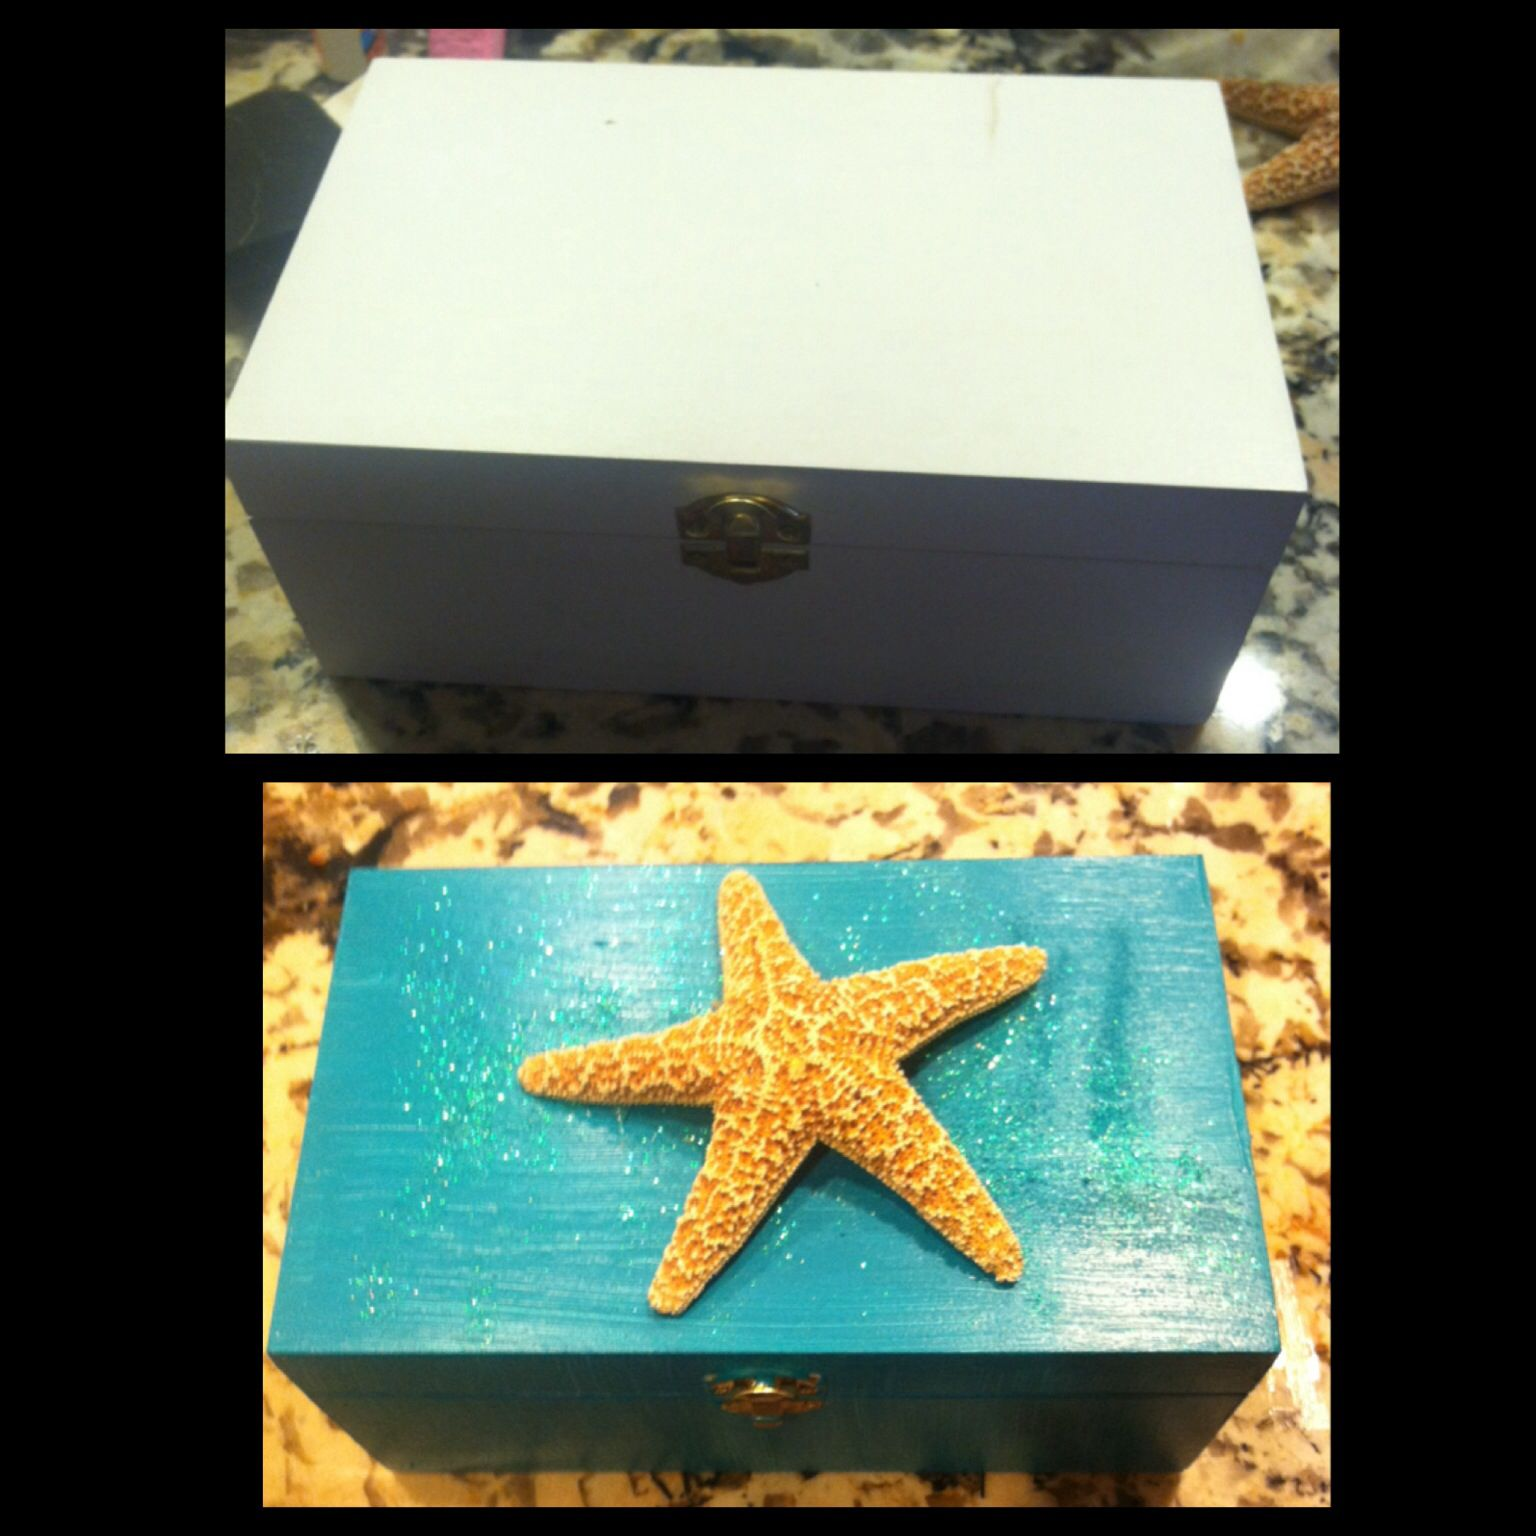 A jewelry box I painted for a friend who likes anything to do with the ocean